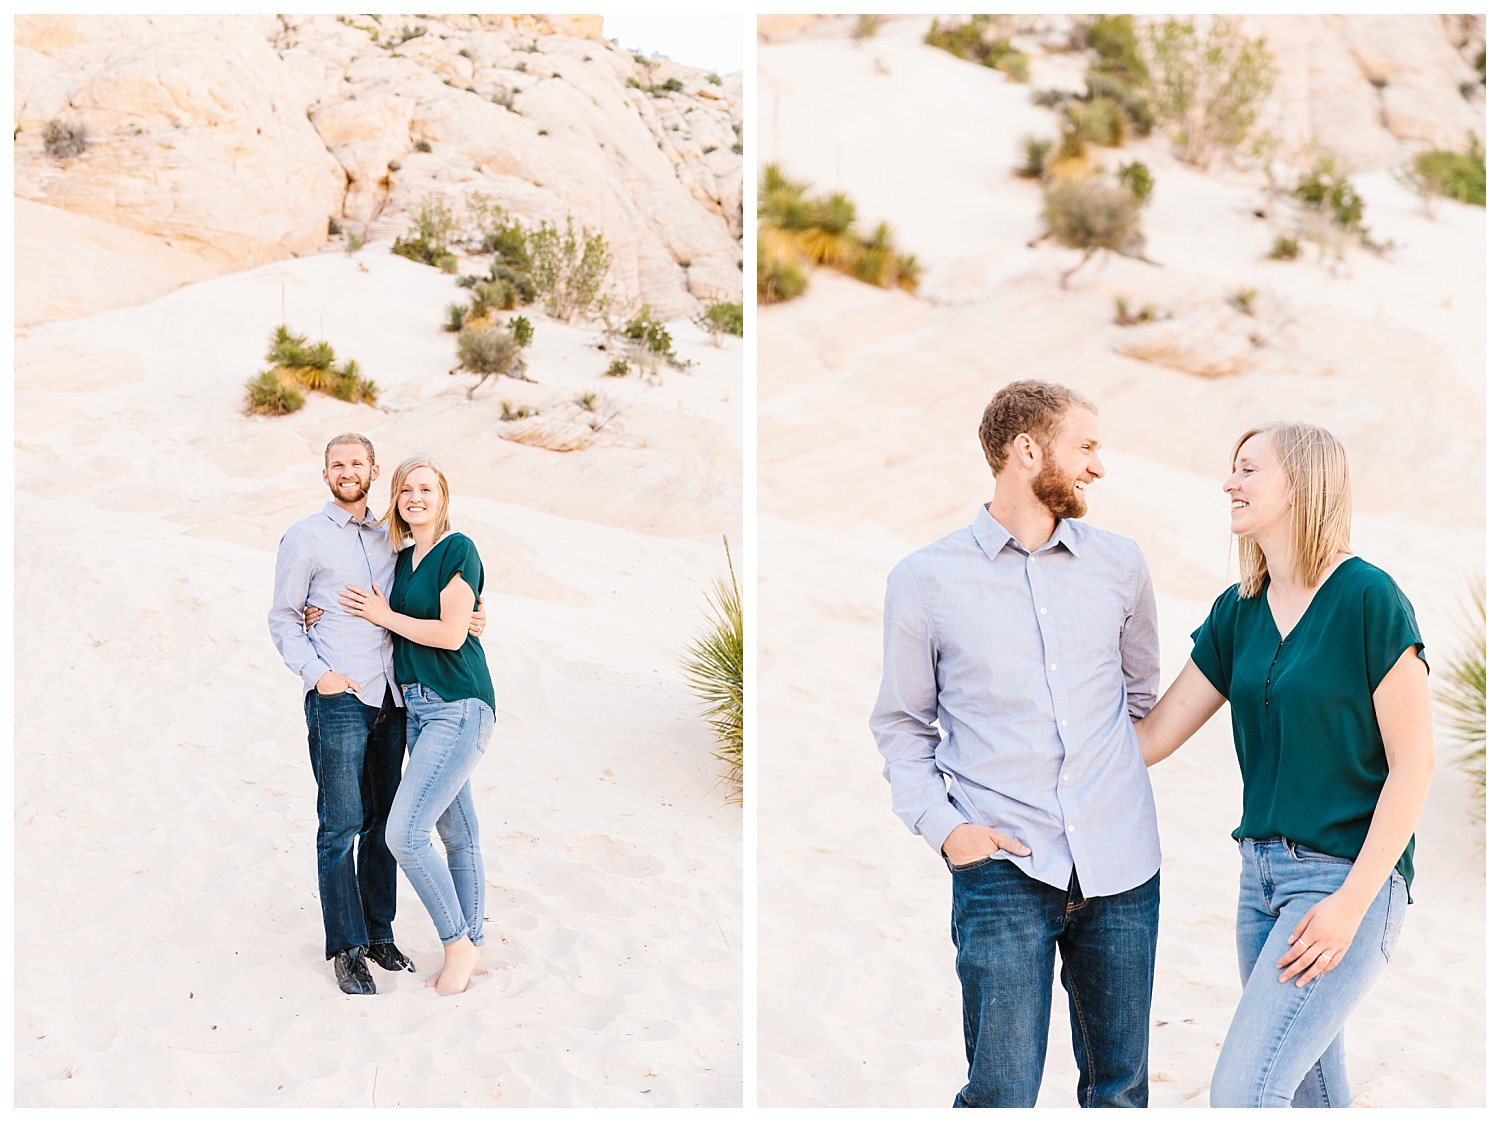 Family Session in Snow Canyon Utah | Rachel Lindsey Photography | Utah Family Photographer 6